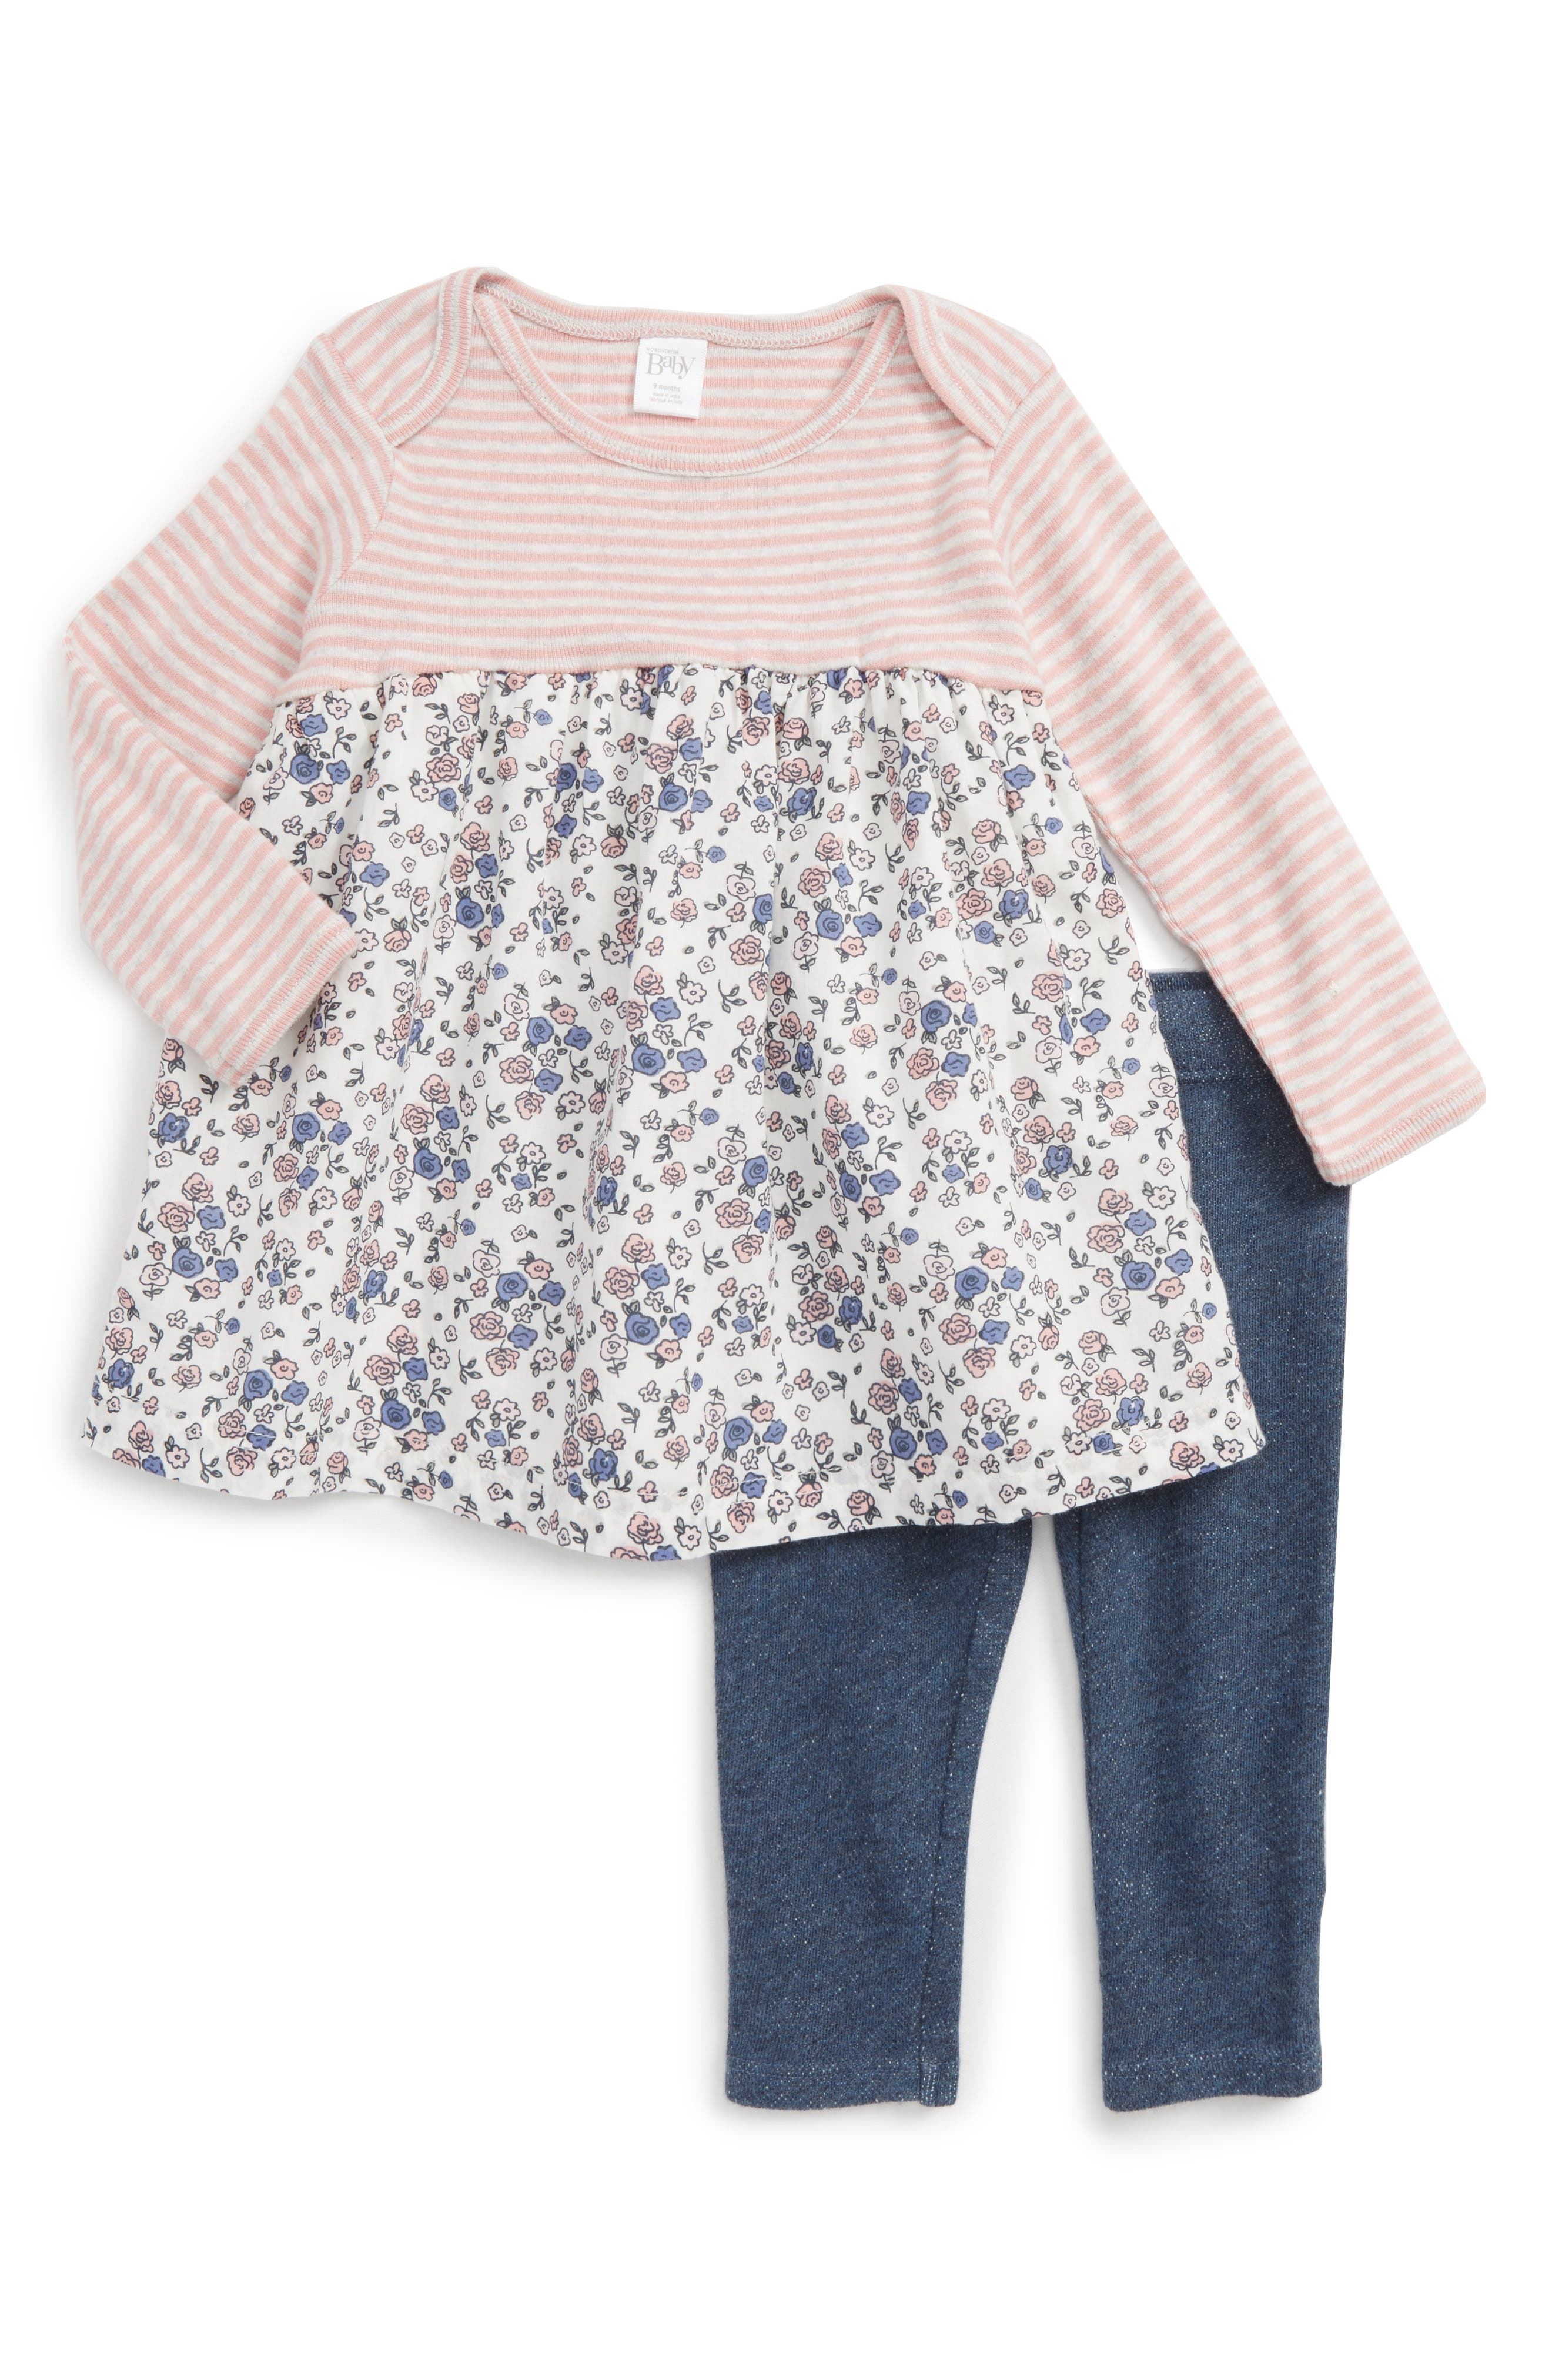 Nordstrom Baby Dress & Leggings Set (Baby Girls)